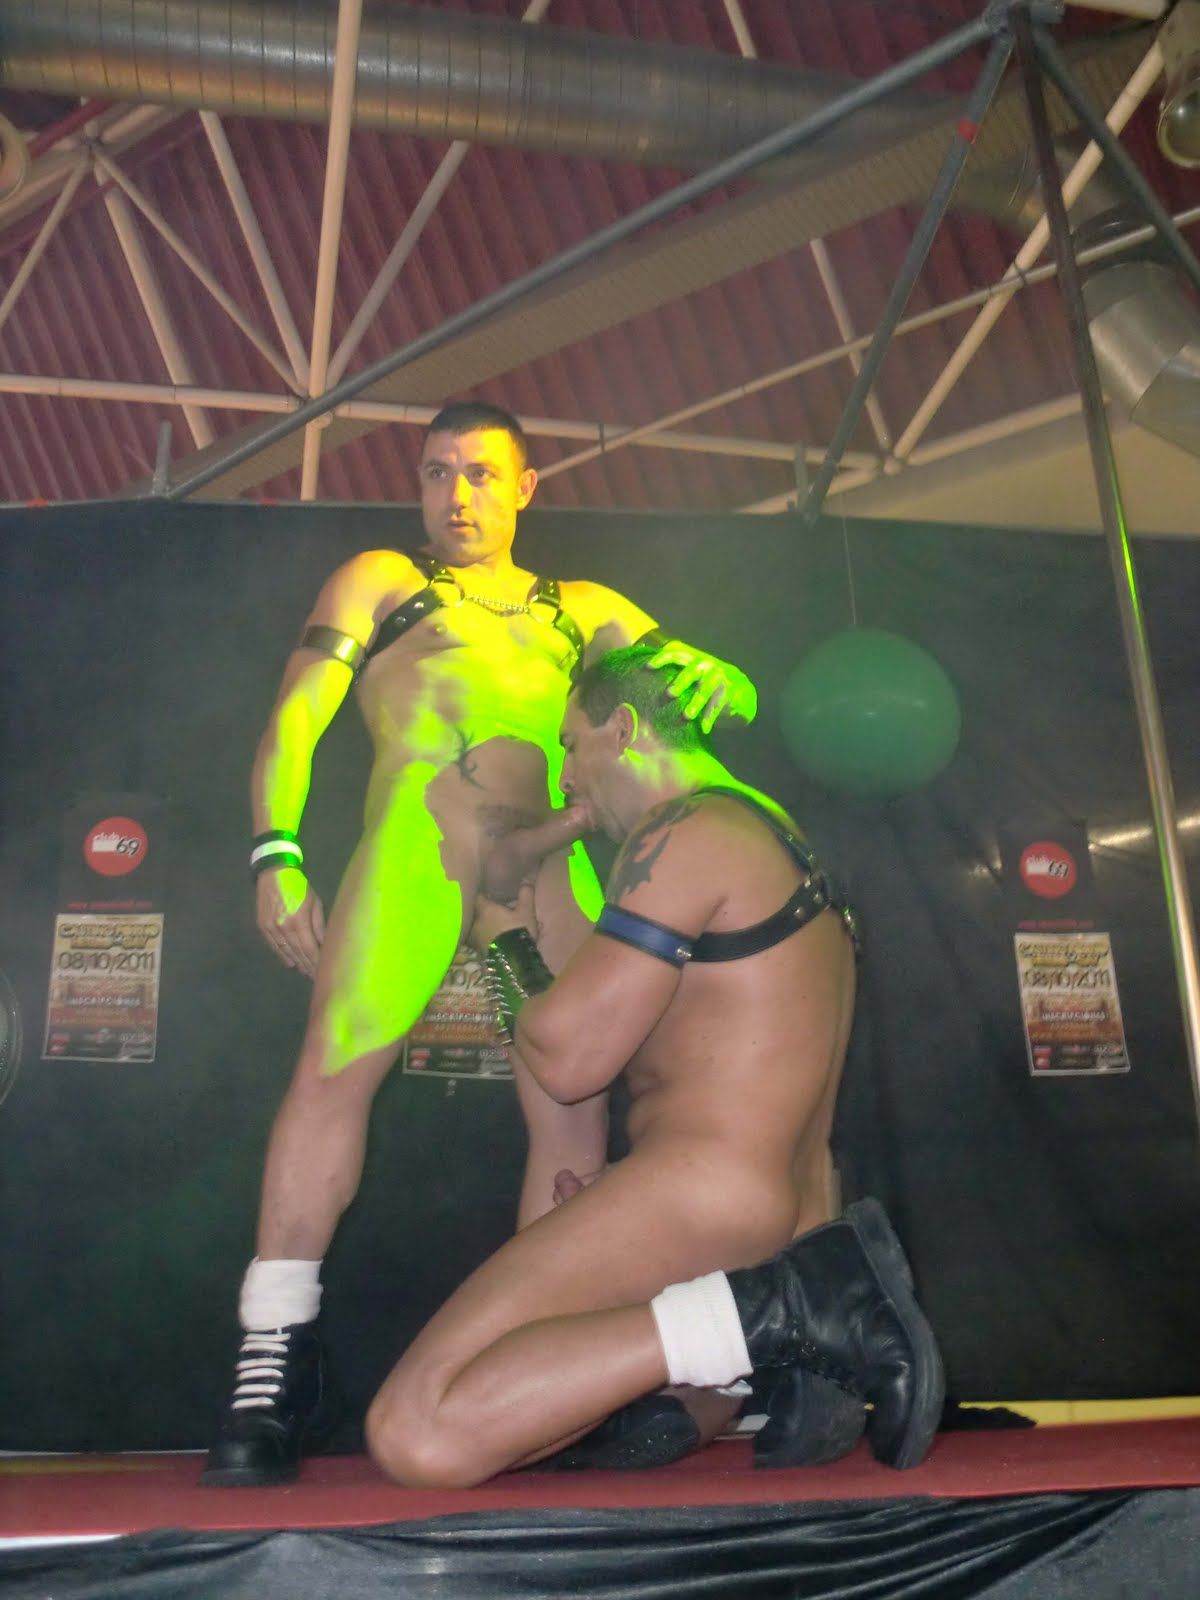 Turbo leon y manuperronash gay fuck on stage sem 2015 - 3 part 4